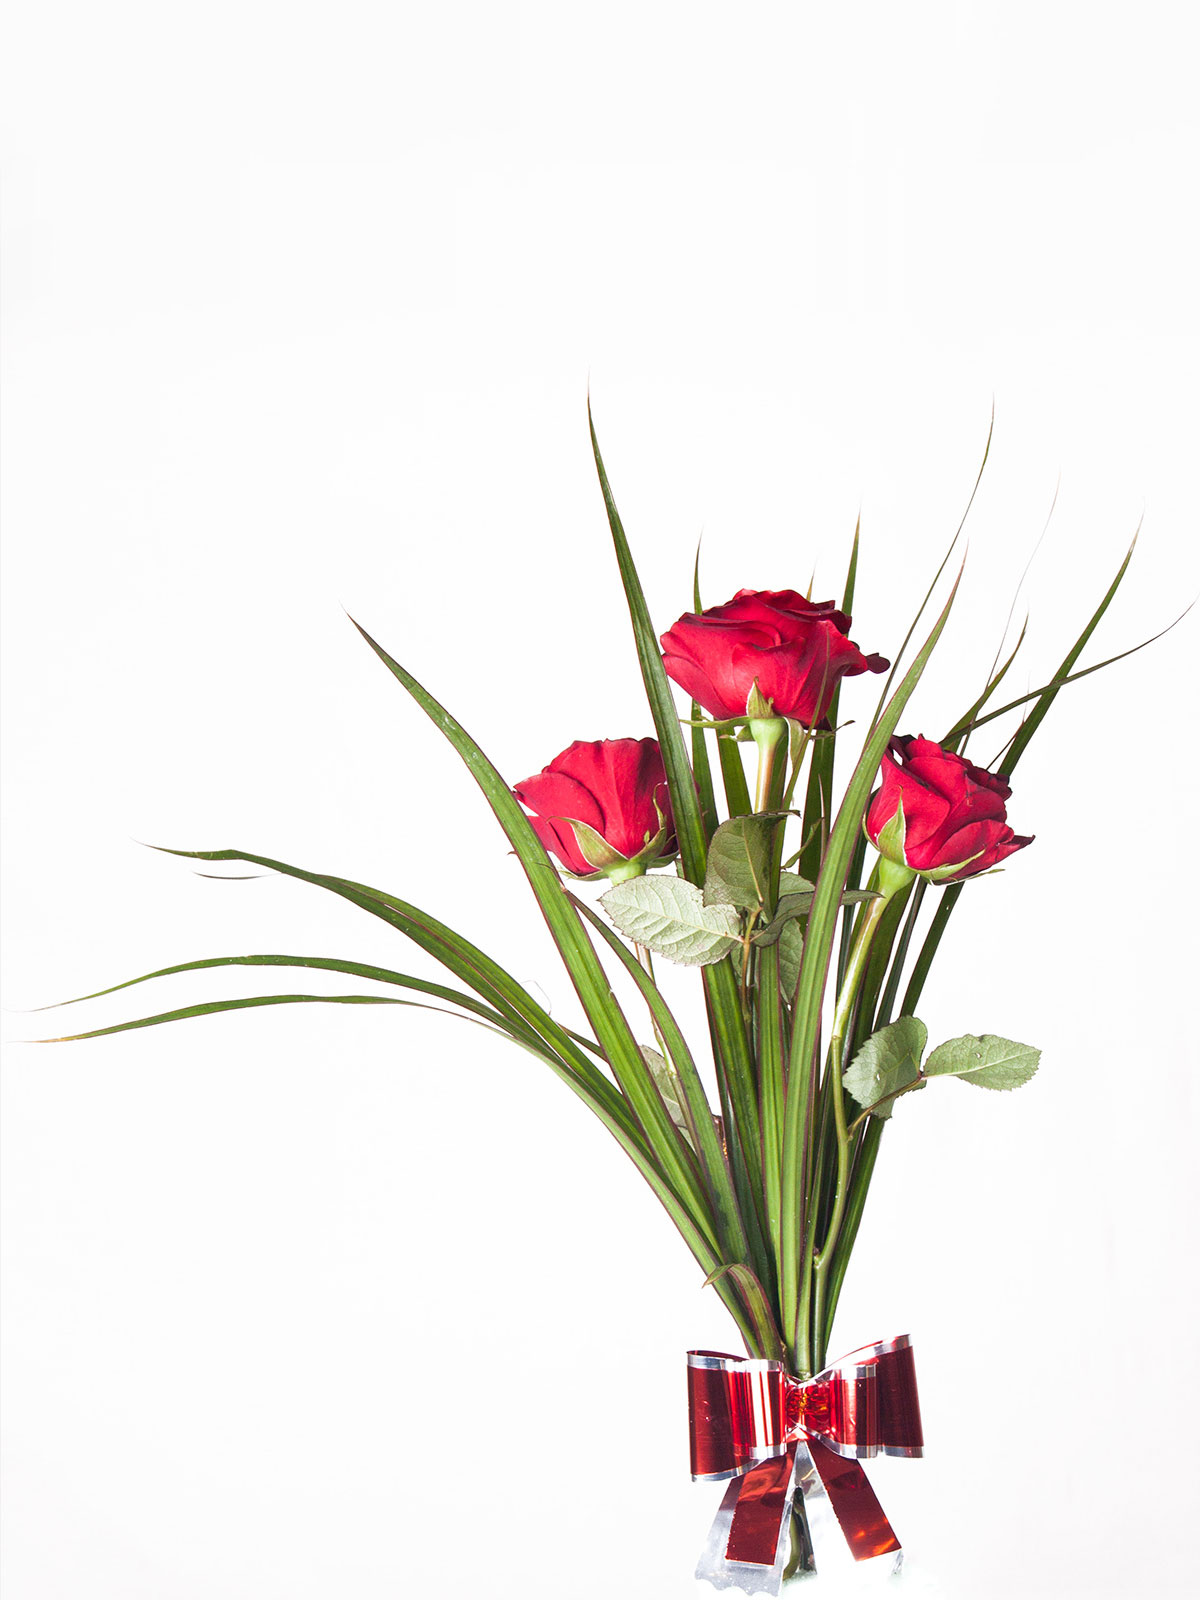 How to make 3roses bouquet flower boutiques in toronto ideas a rose is a woody perennial flowering plant of the genus rosa in the family rosaceae or the flower it bears there are over a hundred species and izmirmasajfo